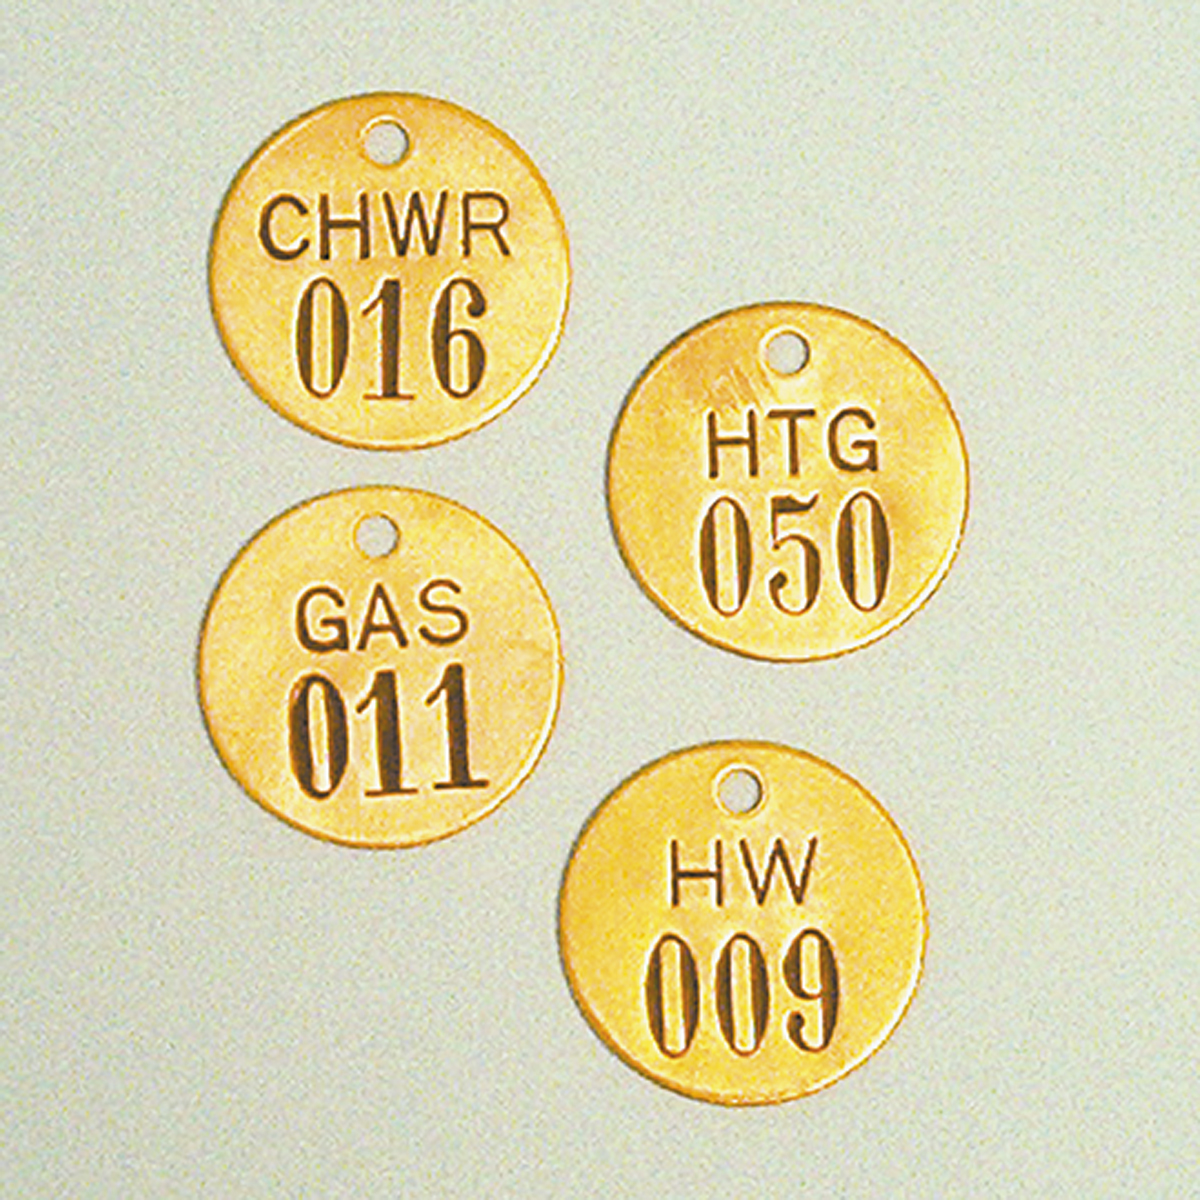 VALVE IDENTIFICATION NUMBERED BRASS TAGS